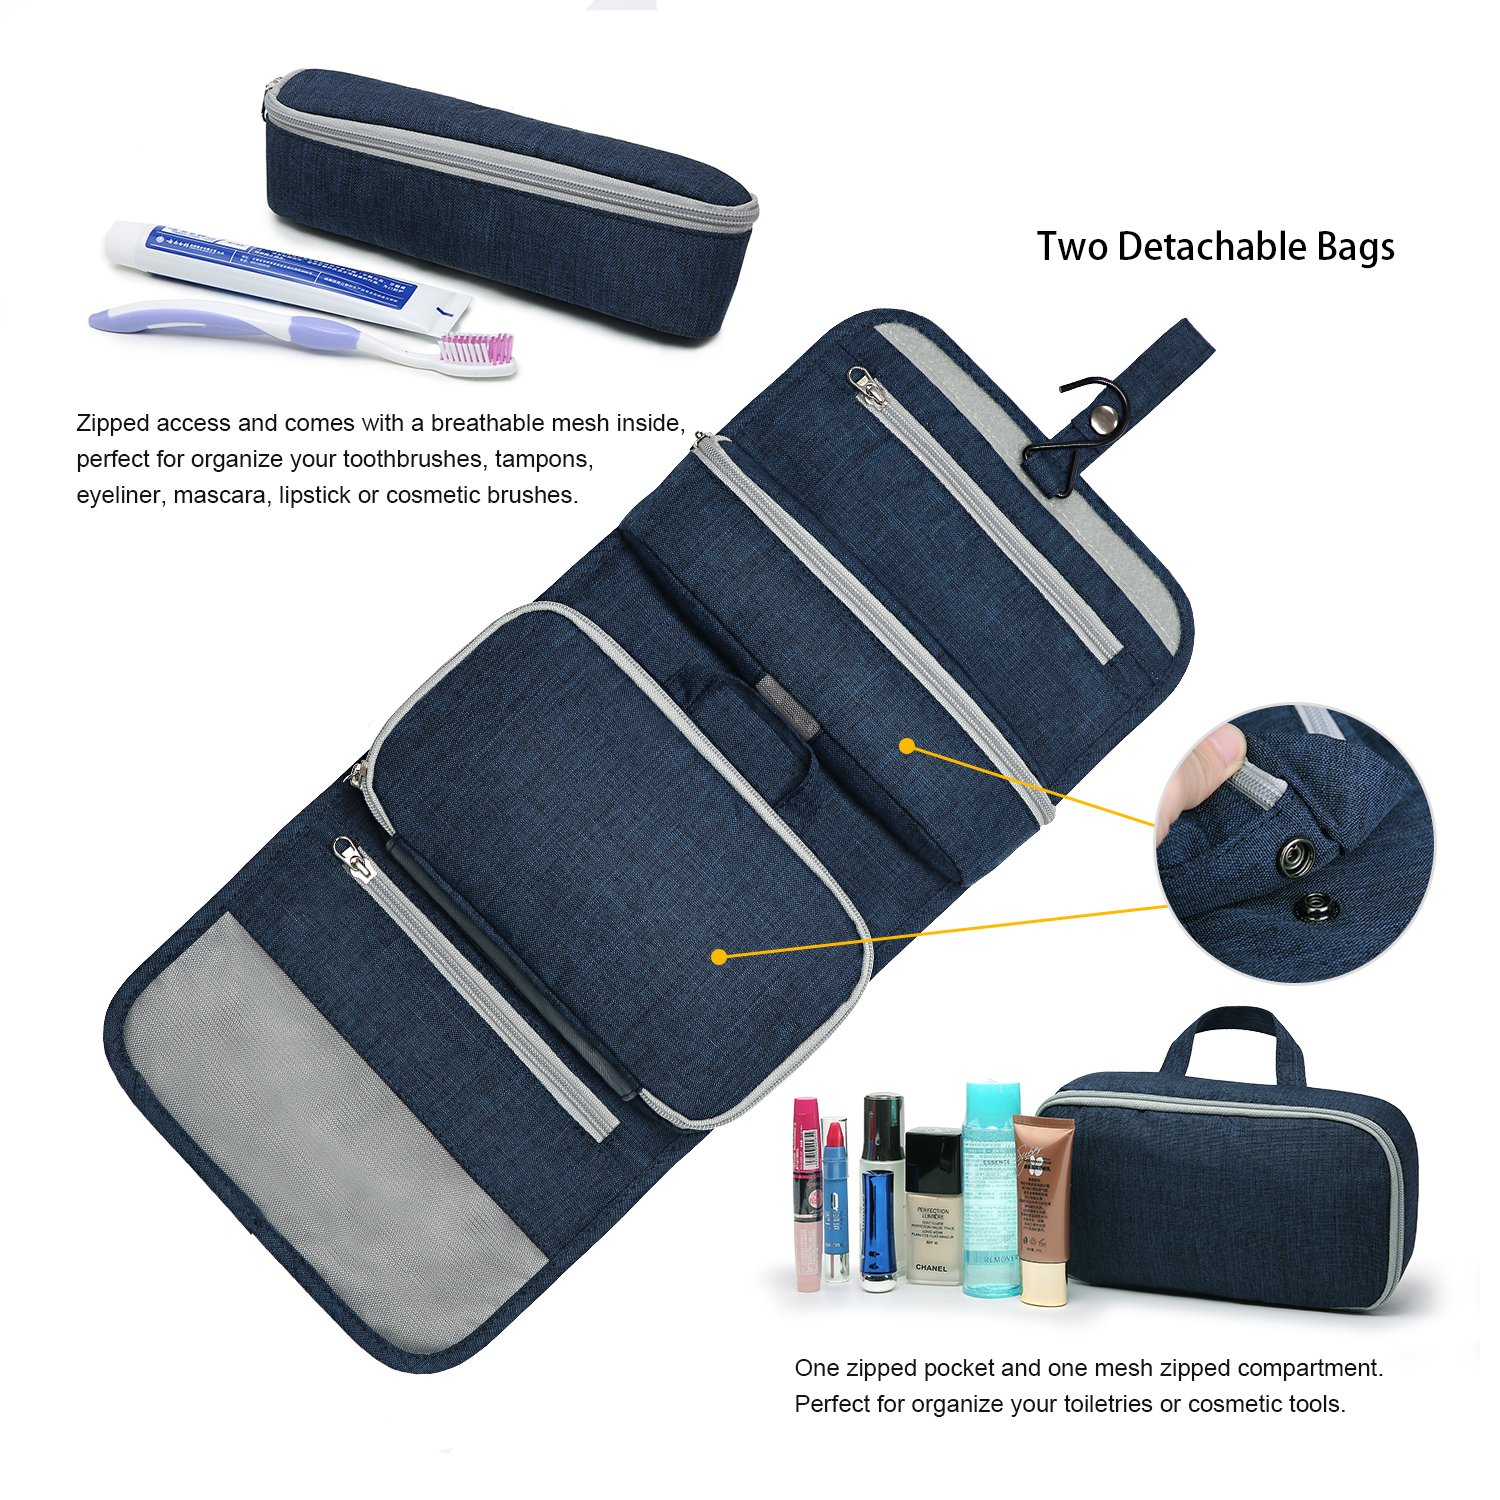 Mountaintop Hanging Travel Toiletry Bag, 7.1 x 2.4 x 9.3-Inch For Men & Women by Mountaintop (Image #4)